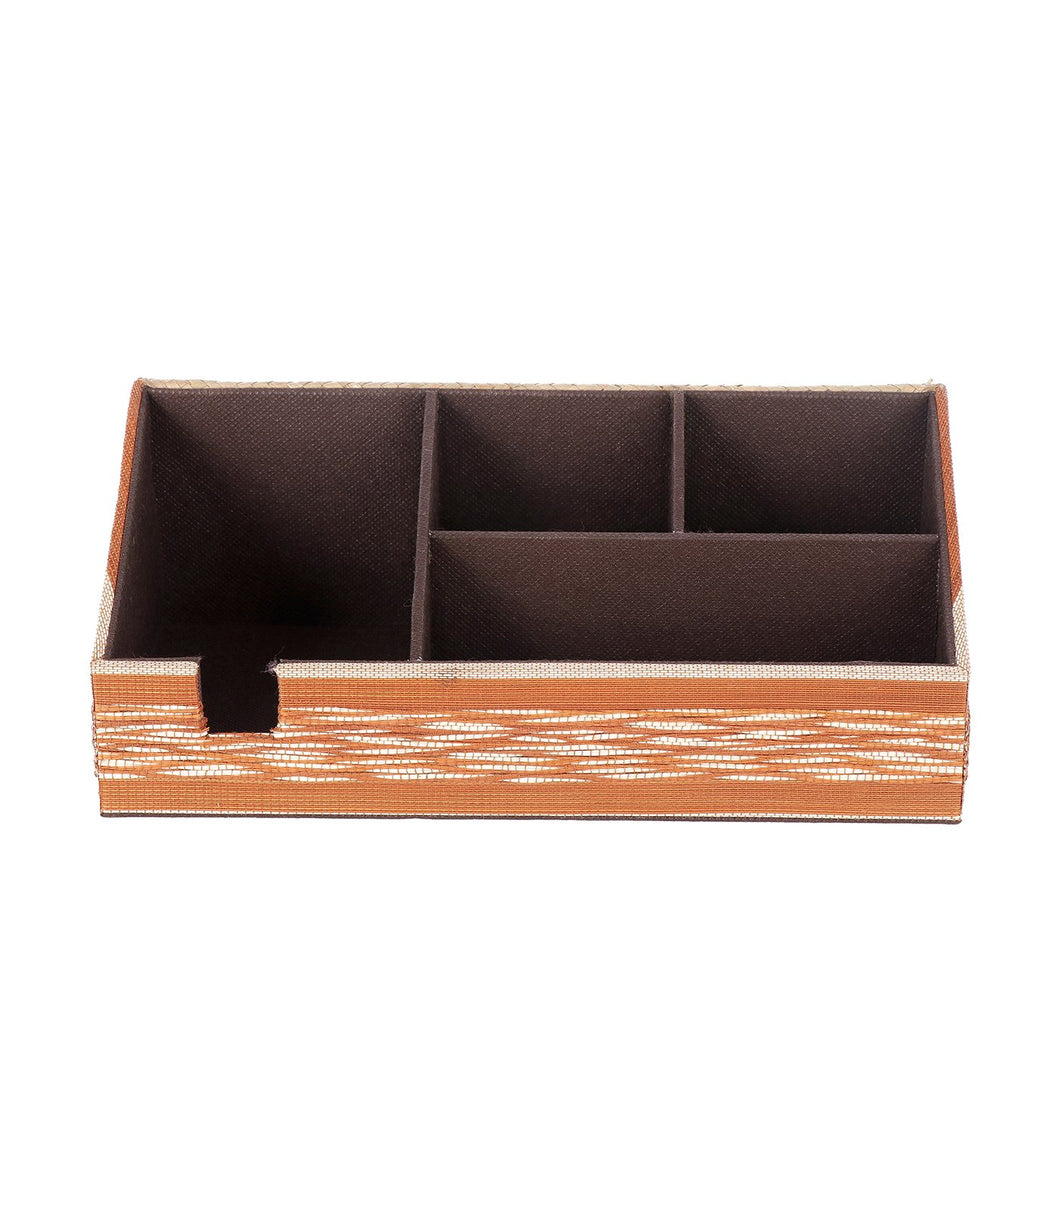 Buntal and Tikog Desk Organizer